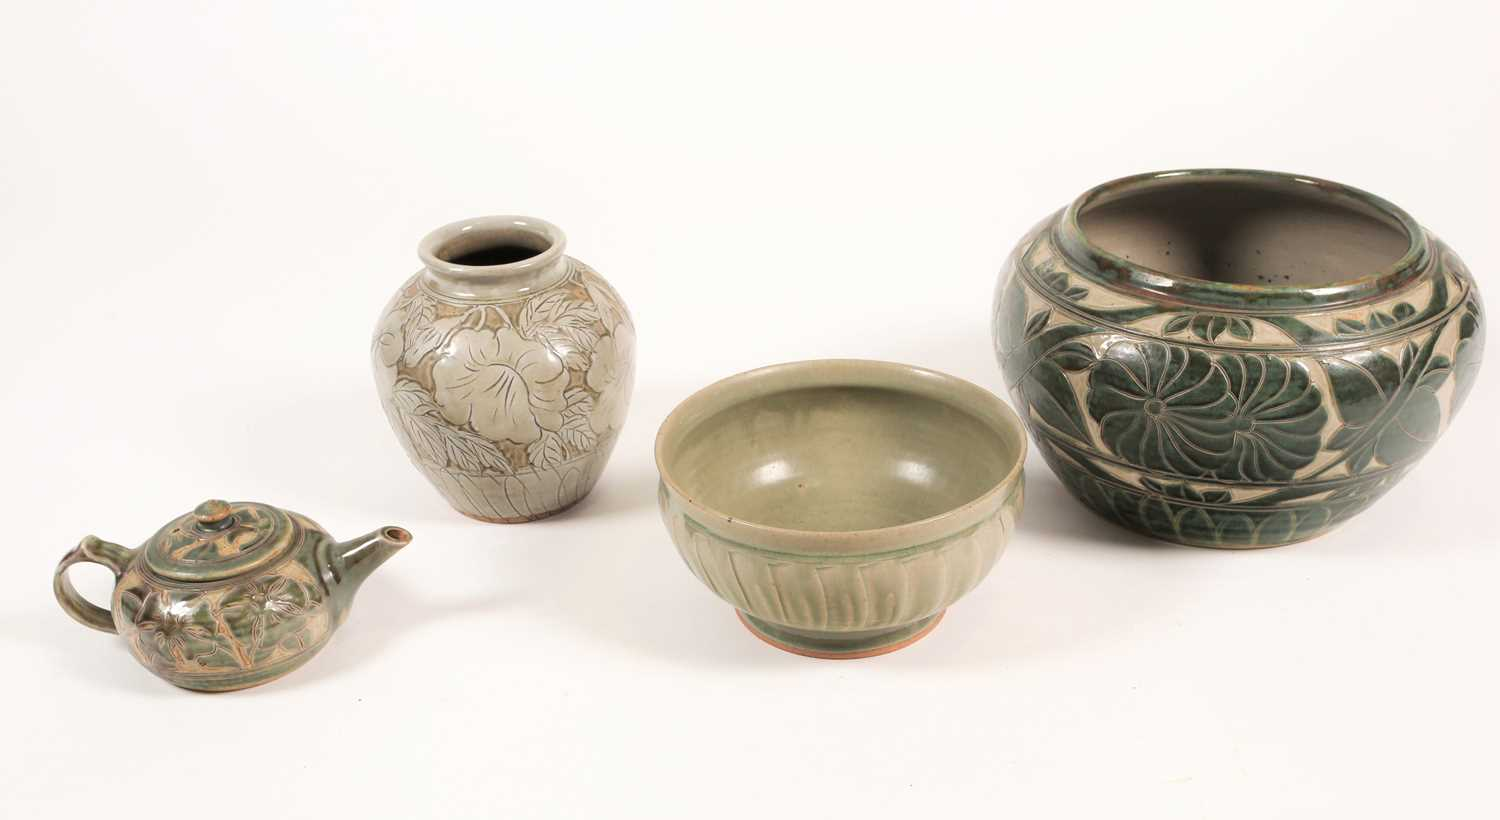 Four pieces of British studio pottery, comprising a jardiniere (19 cm high x 31 cm wide), a